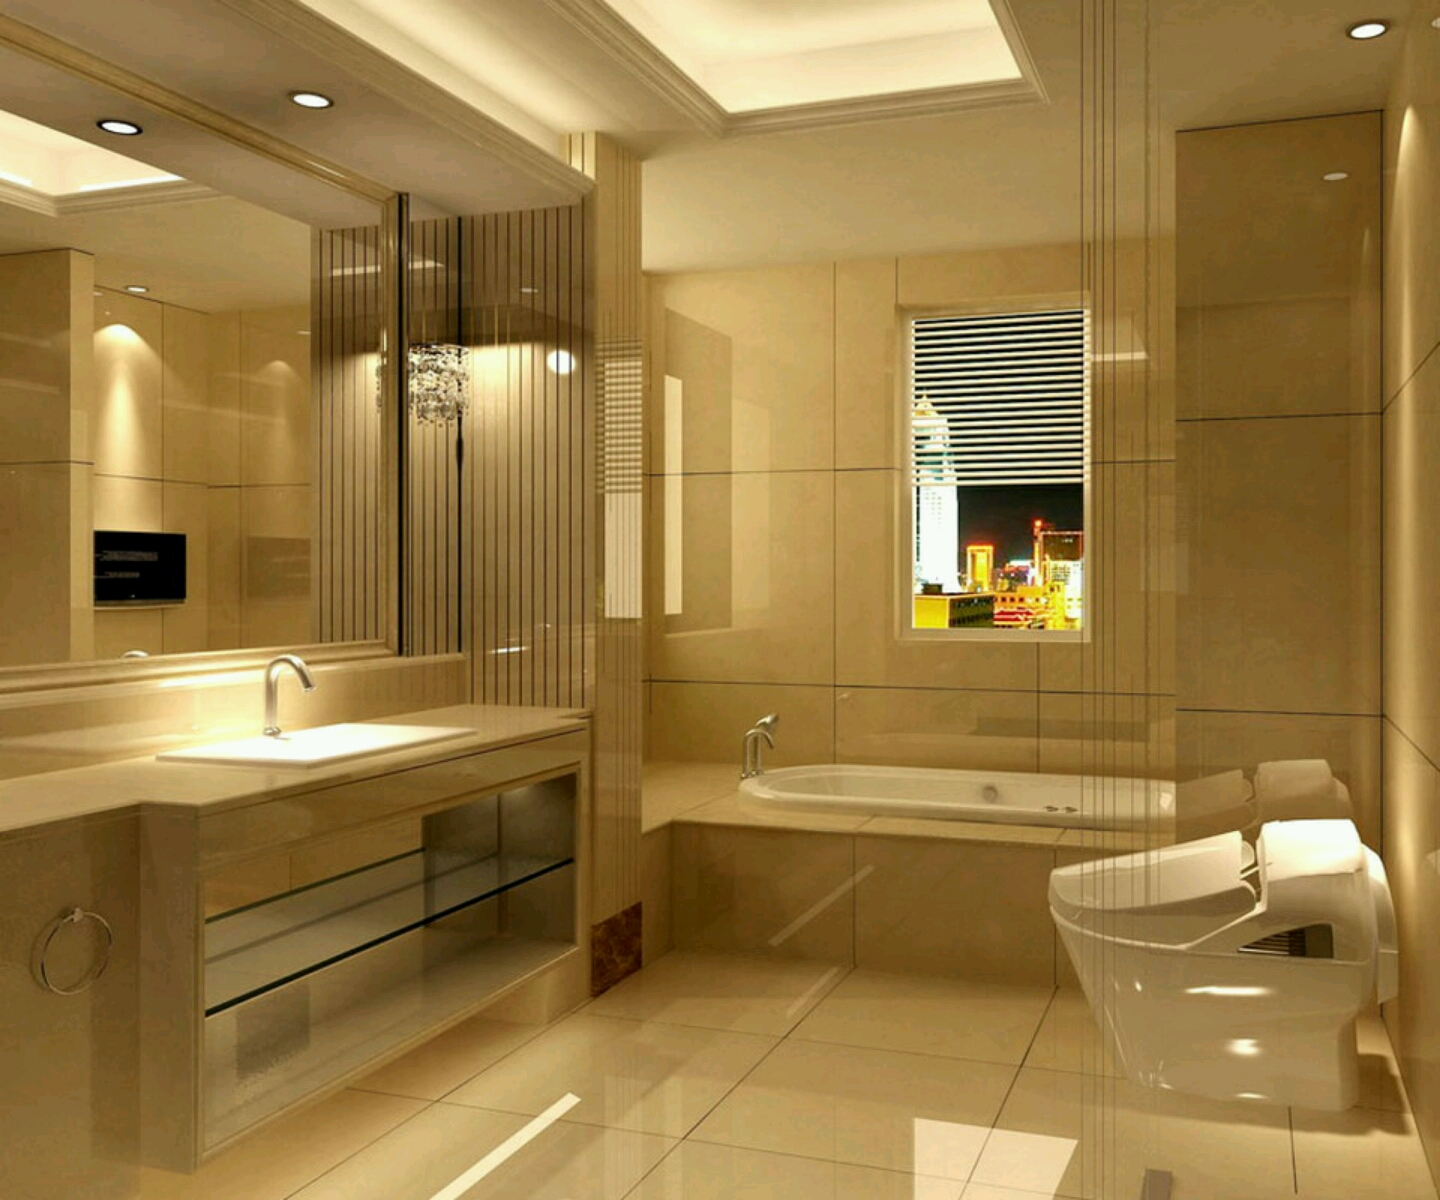 Modern bathrooms setting ideas furniture gallery - Modern bathroom images ...